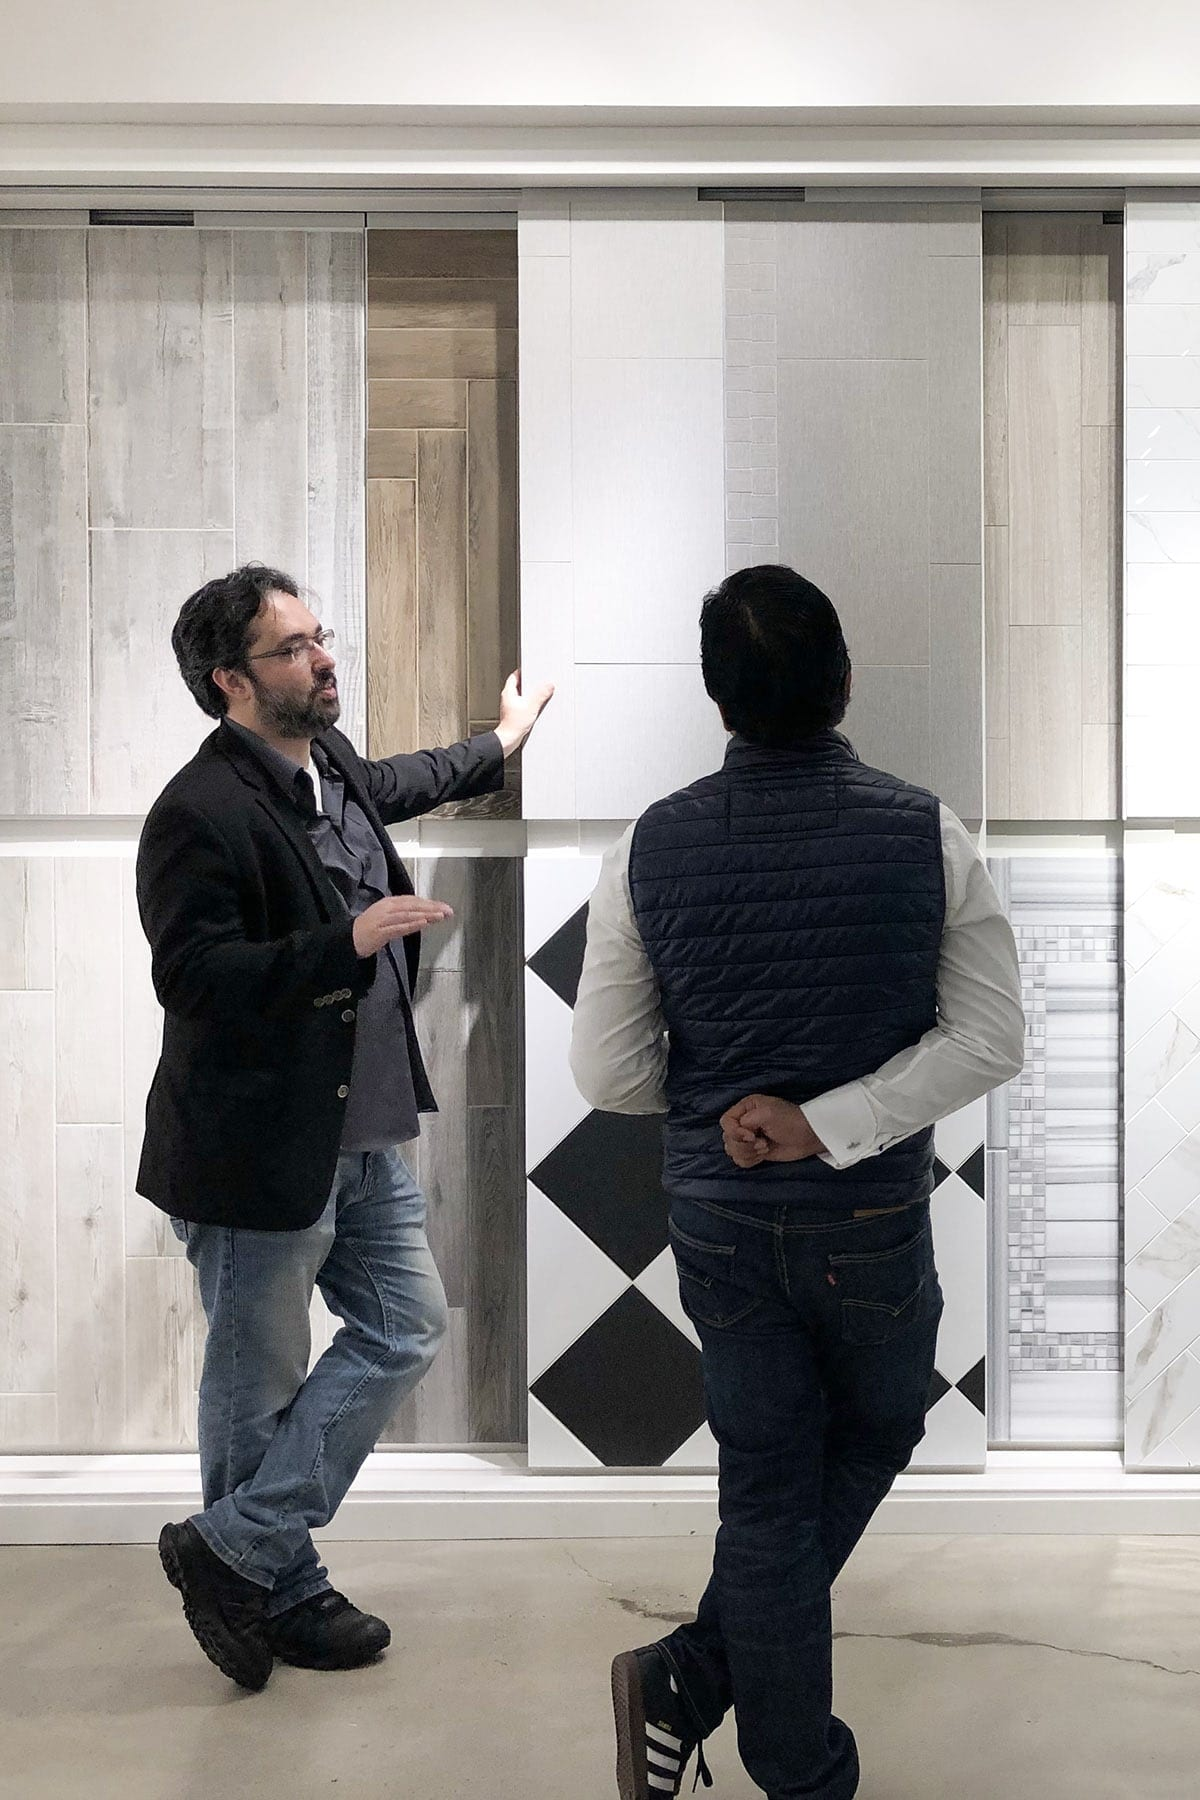 Architect Jorge Fontan and client at a showroom